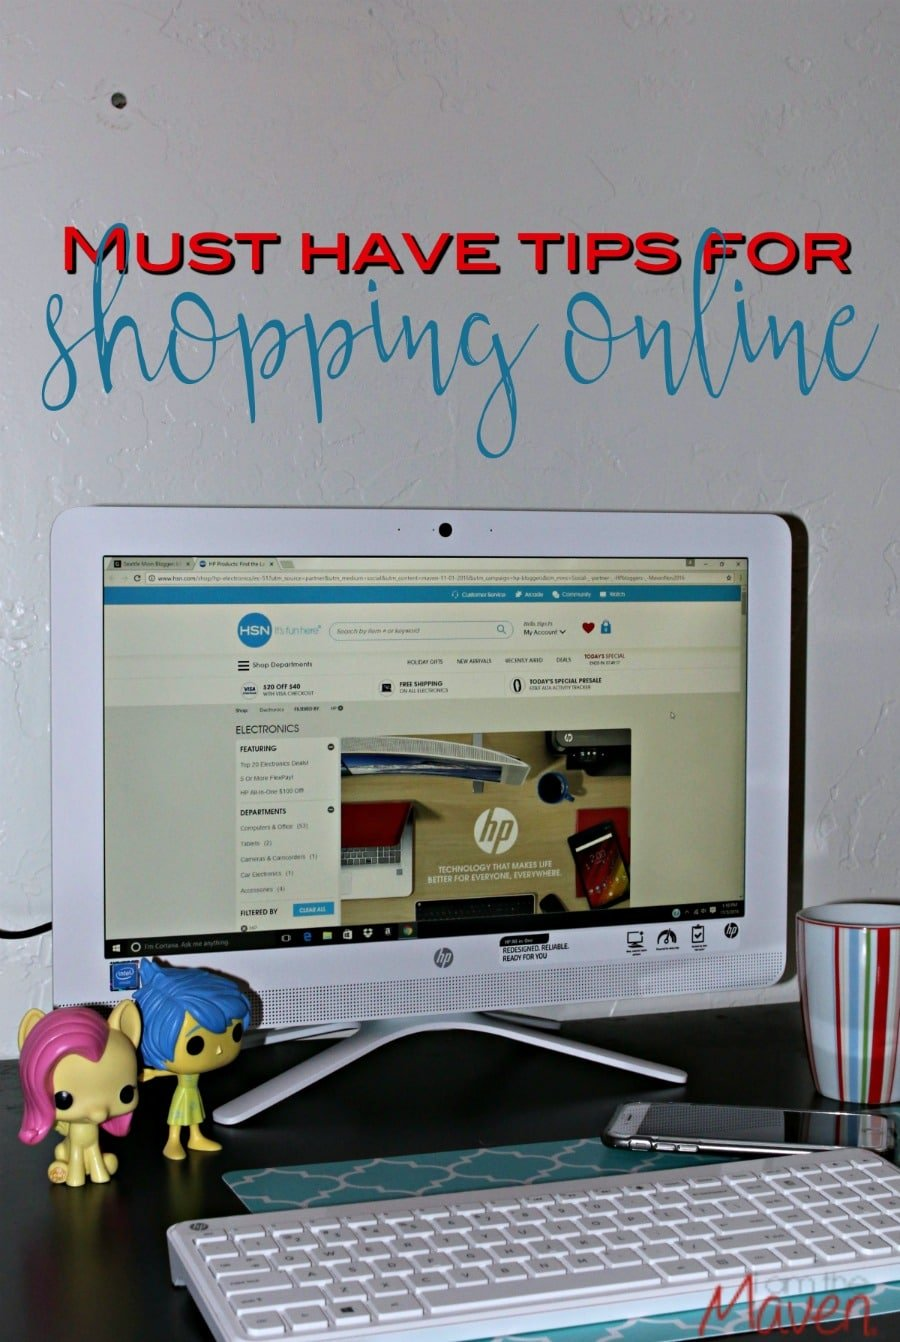 Check out these must have tips for shopping online! Hint: You don't have to wait until Black Friday to save!